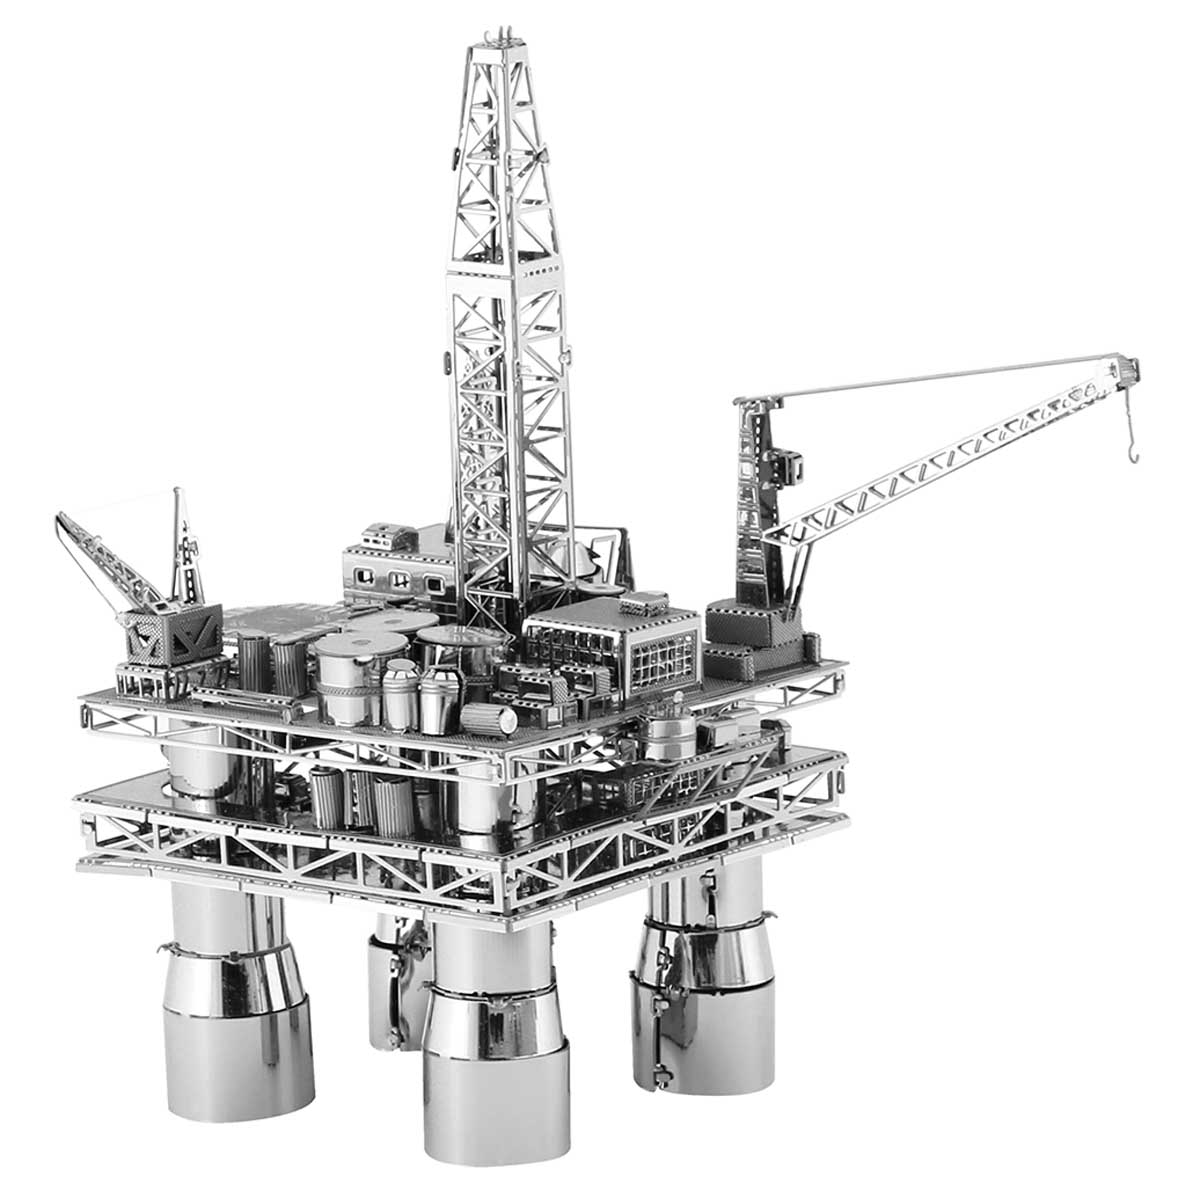 Offshore Oil Rig & Oil Tanker Construction 3D Puzzle